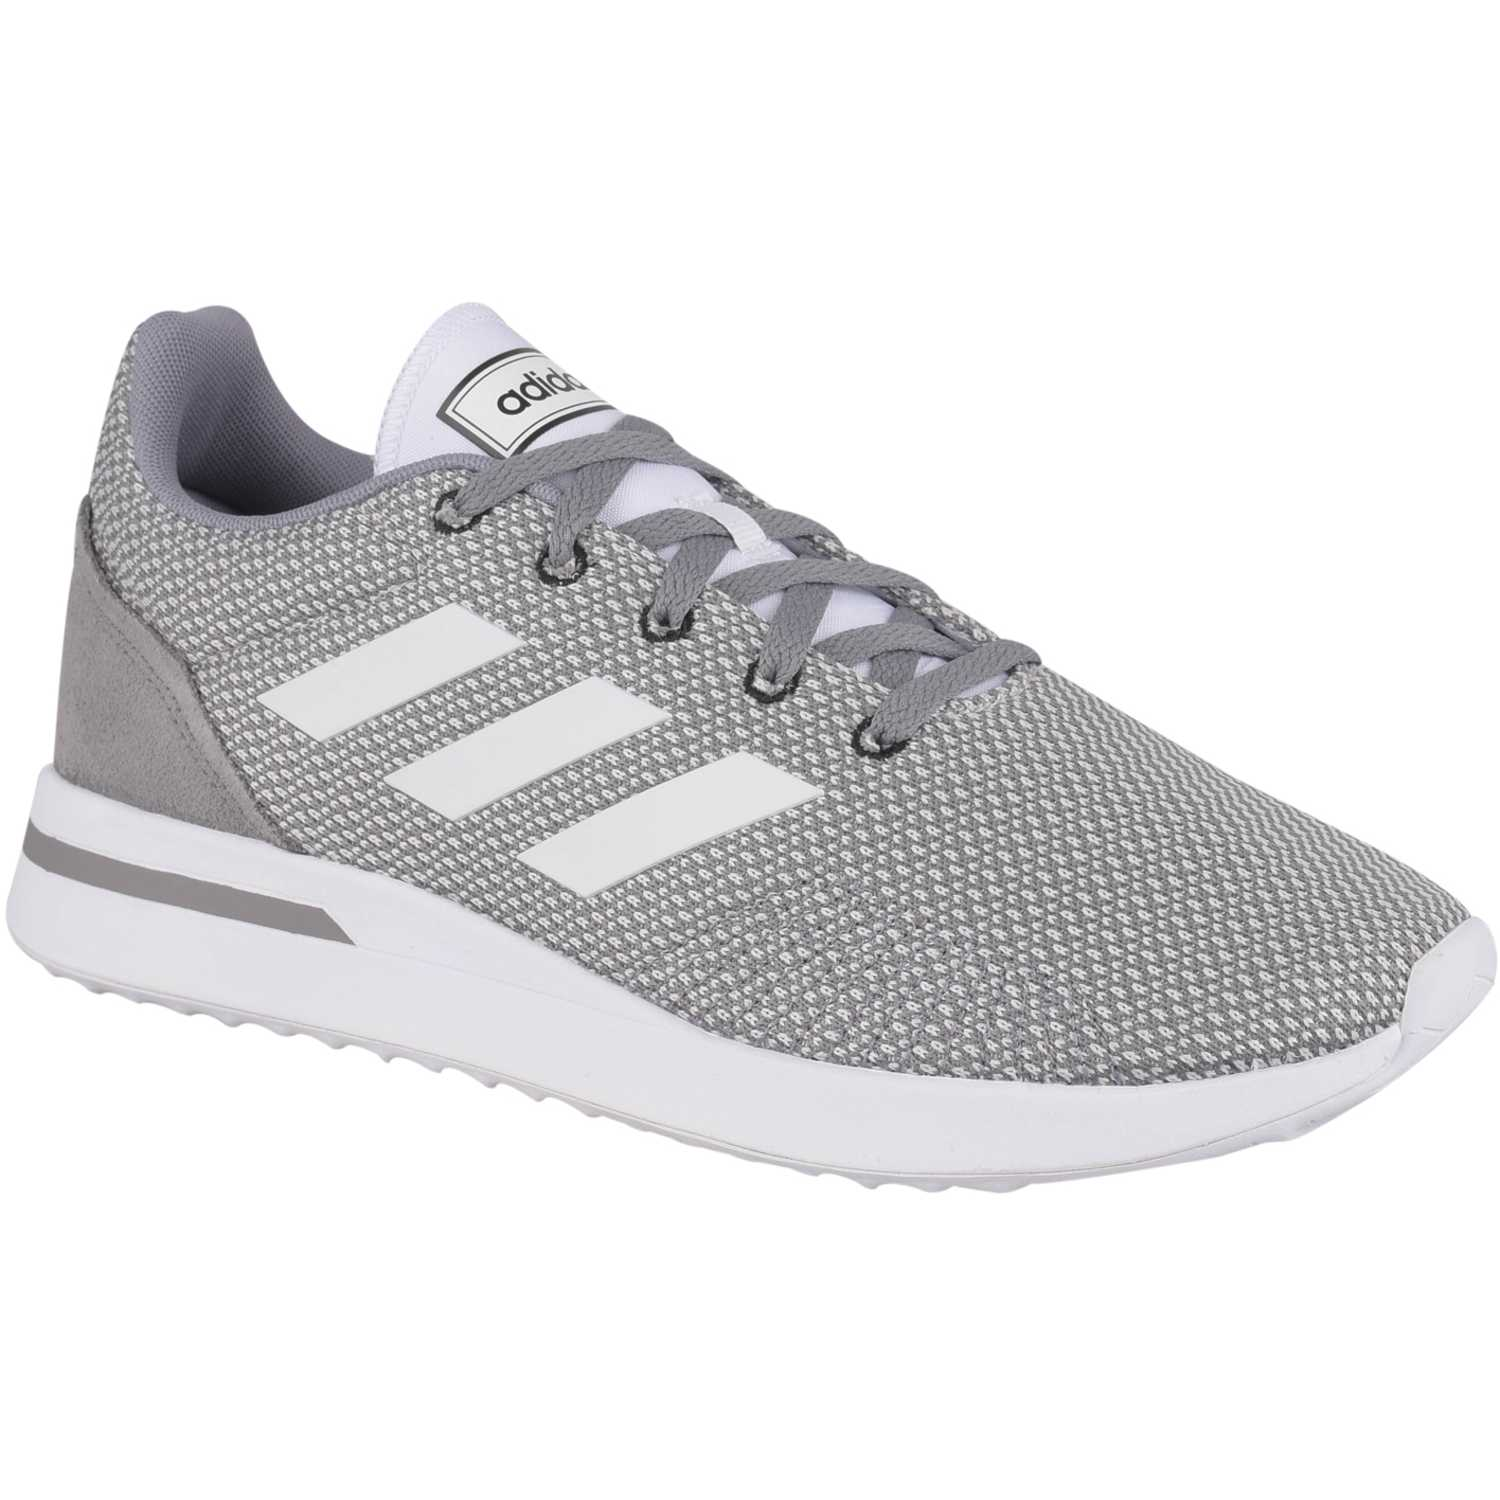 Adidas run70s Gris / blanco Walking